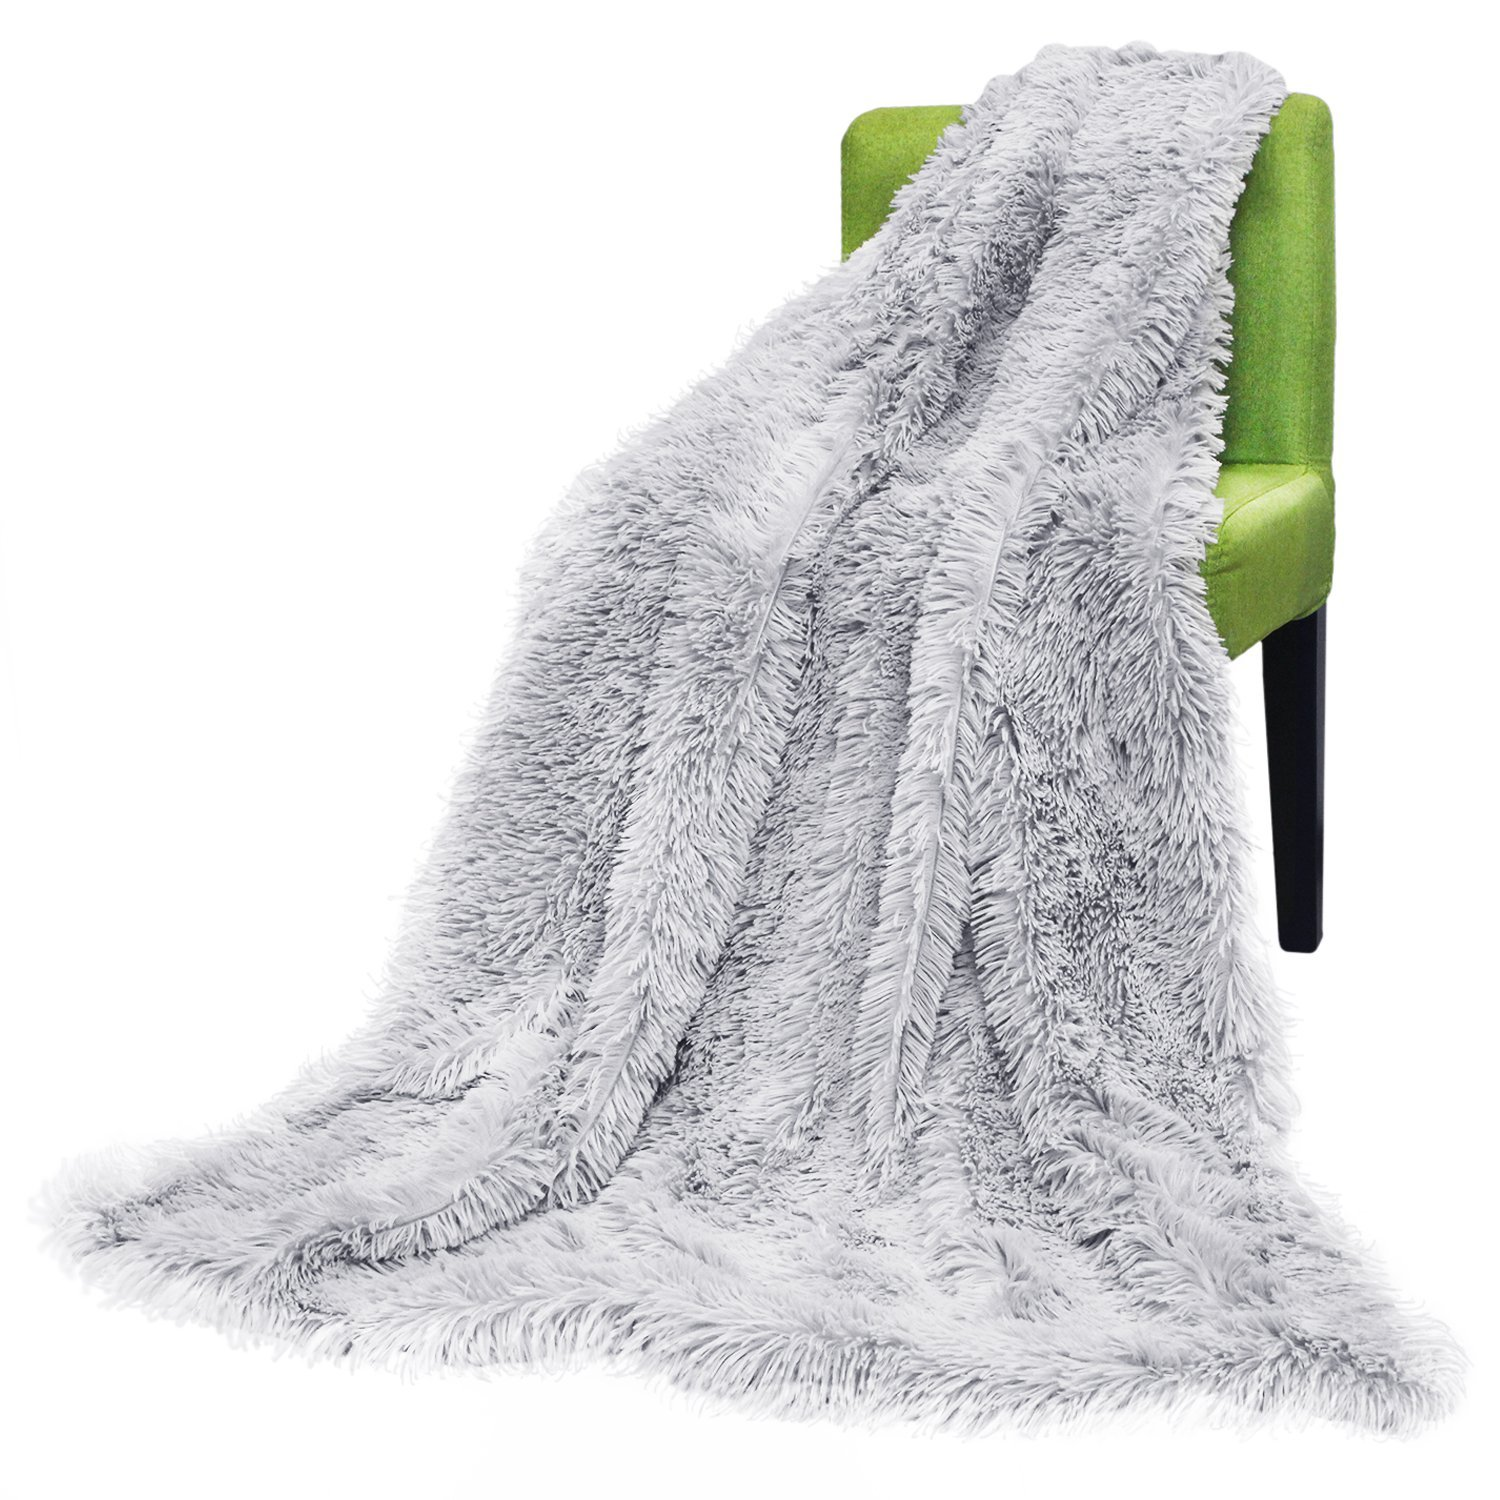 Tayyakoushi Faux Fur Throw Blanket for Couch Light Weight Bed Shaggy Blanket,Gray